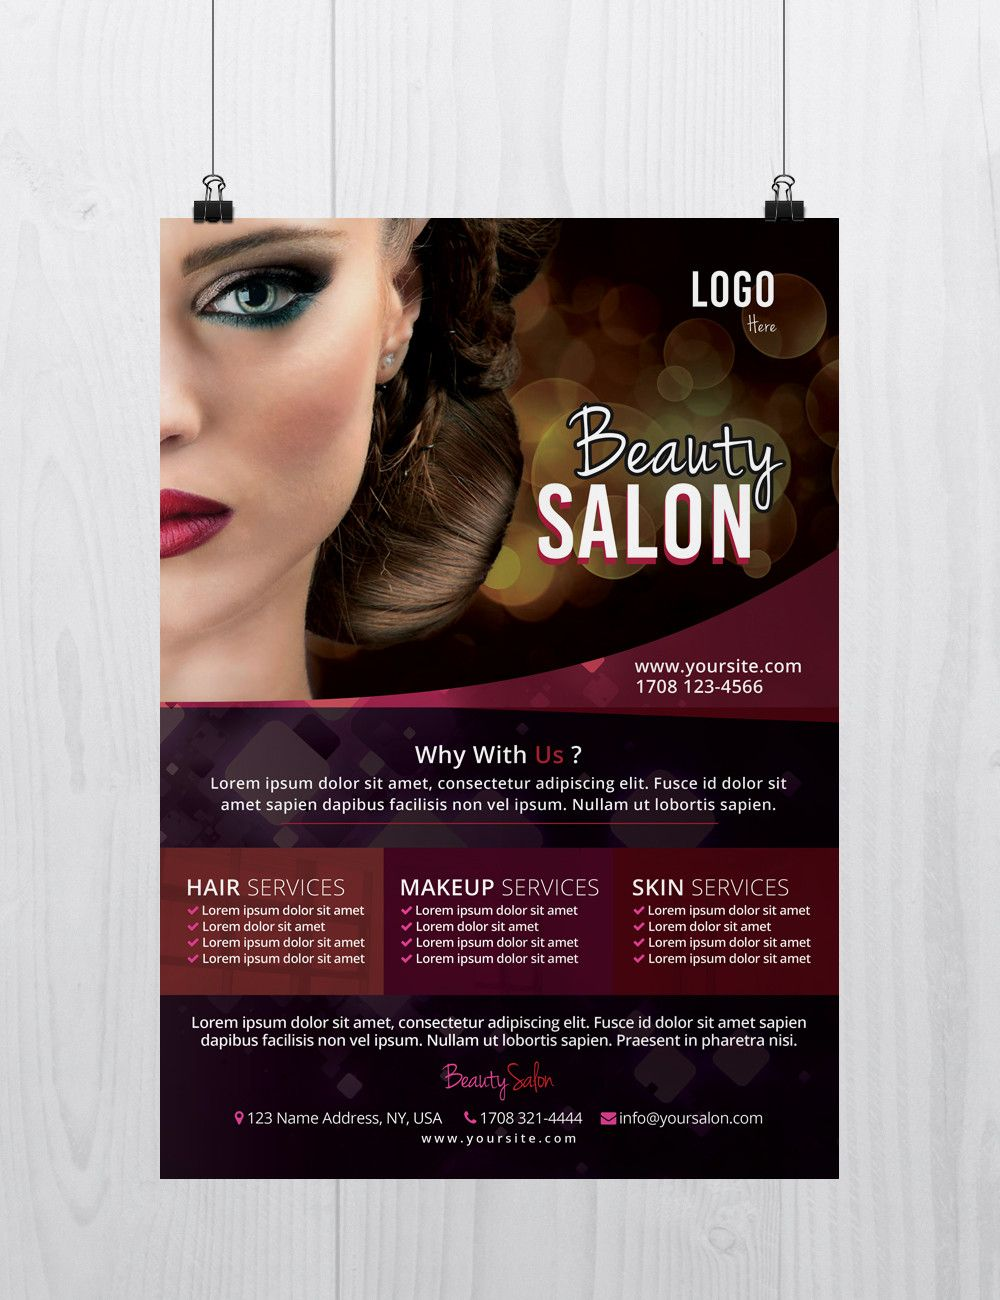 Beauty Salon Is A Free Psd Flyer Template To Download This Psd Flyer Works Perfect For Any Beauty S Free Beauty Products Free Psd Flyer Templates Beauty Salon